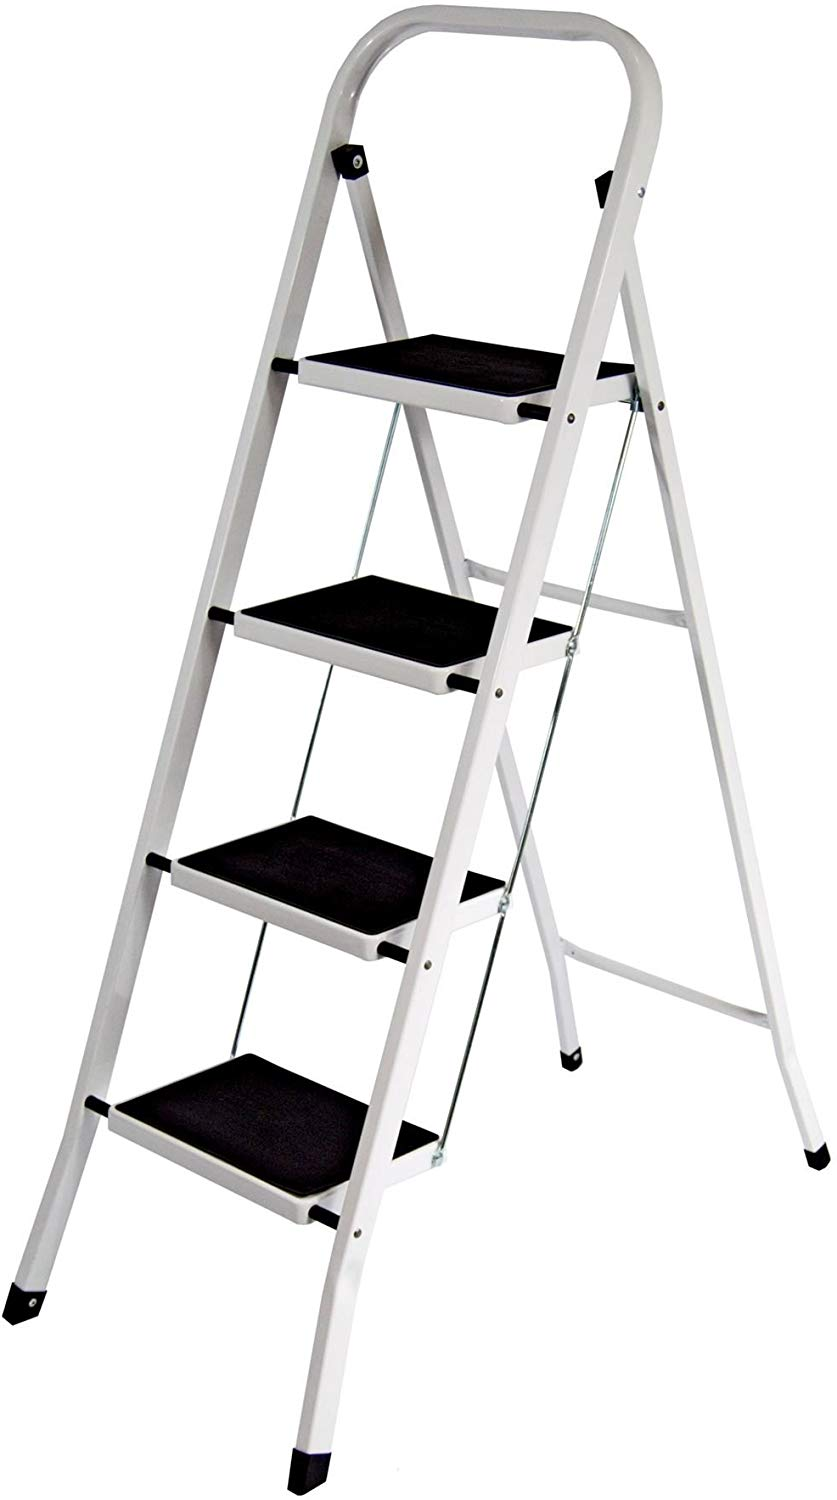 Save £6.96 on Home Discount 4 Step Ladder, Heavy Duty Steel, Folding